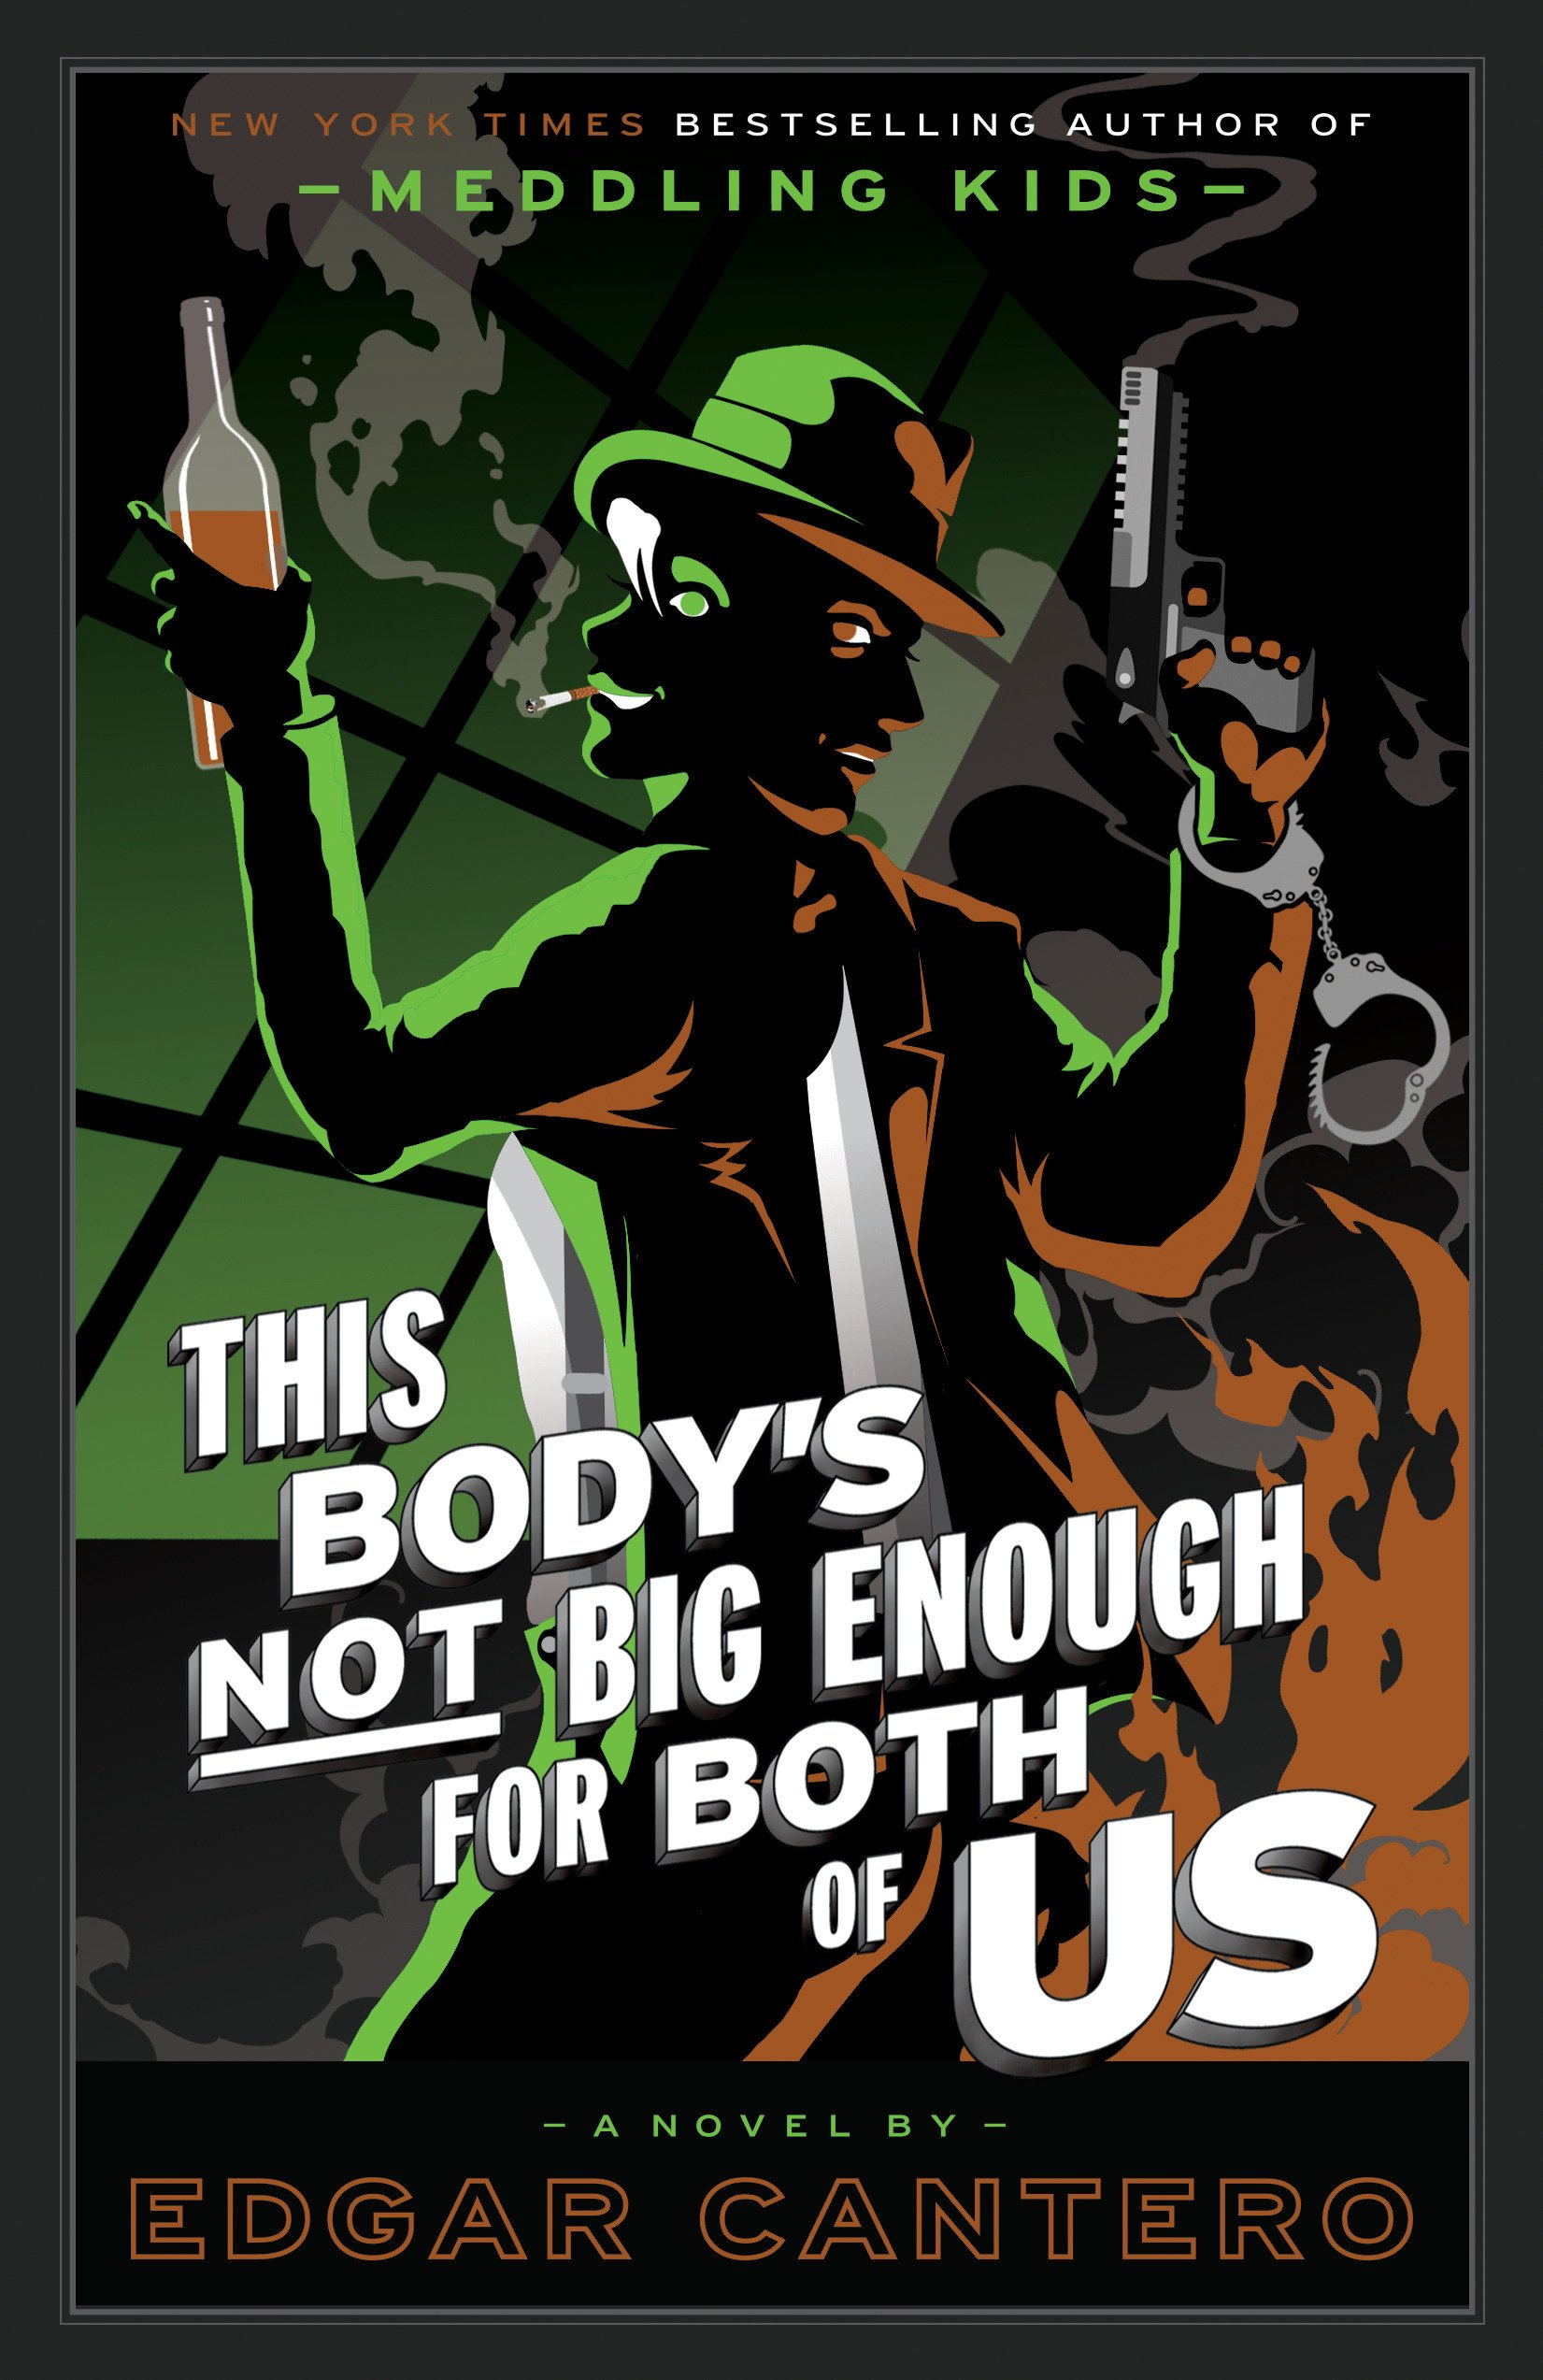 this body's not big enough for both of us by edgar cantero.jpg